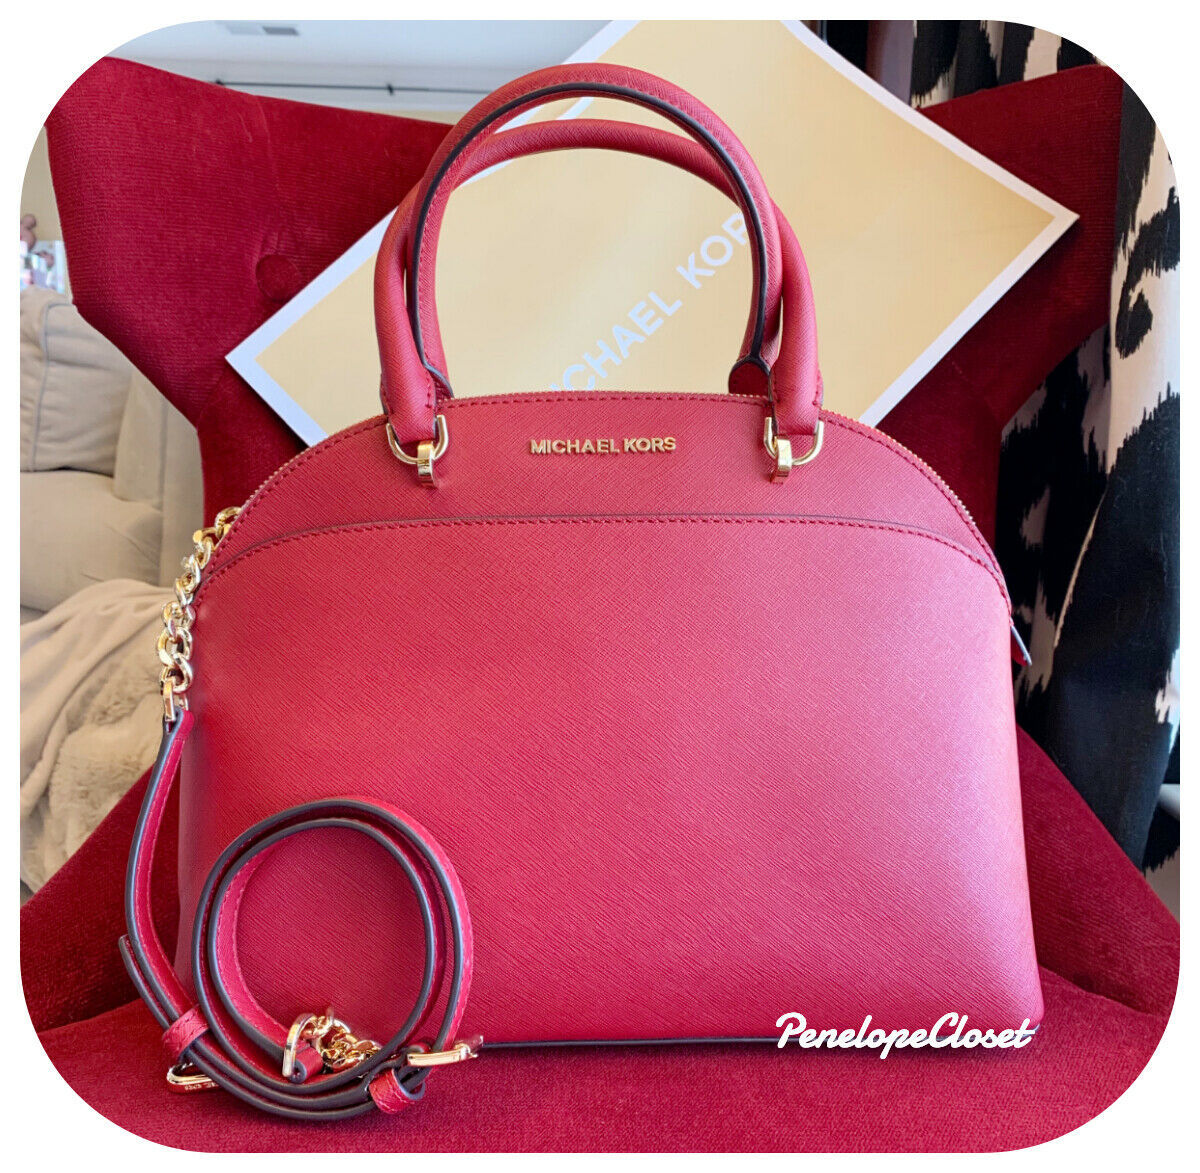 059392bc8619 57. 57. Previous. NWT MICHAEL KORS SAFFIANO LEATHER EMMY LARGE DOME SATCHEL  BAG IN SCARLET